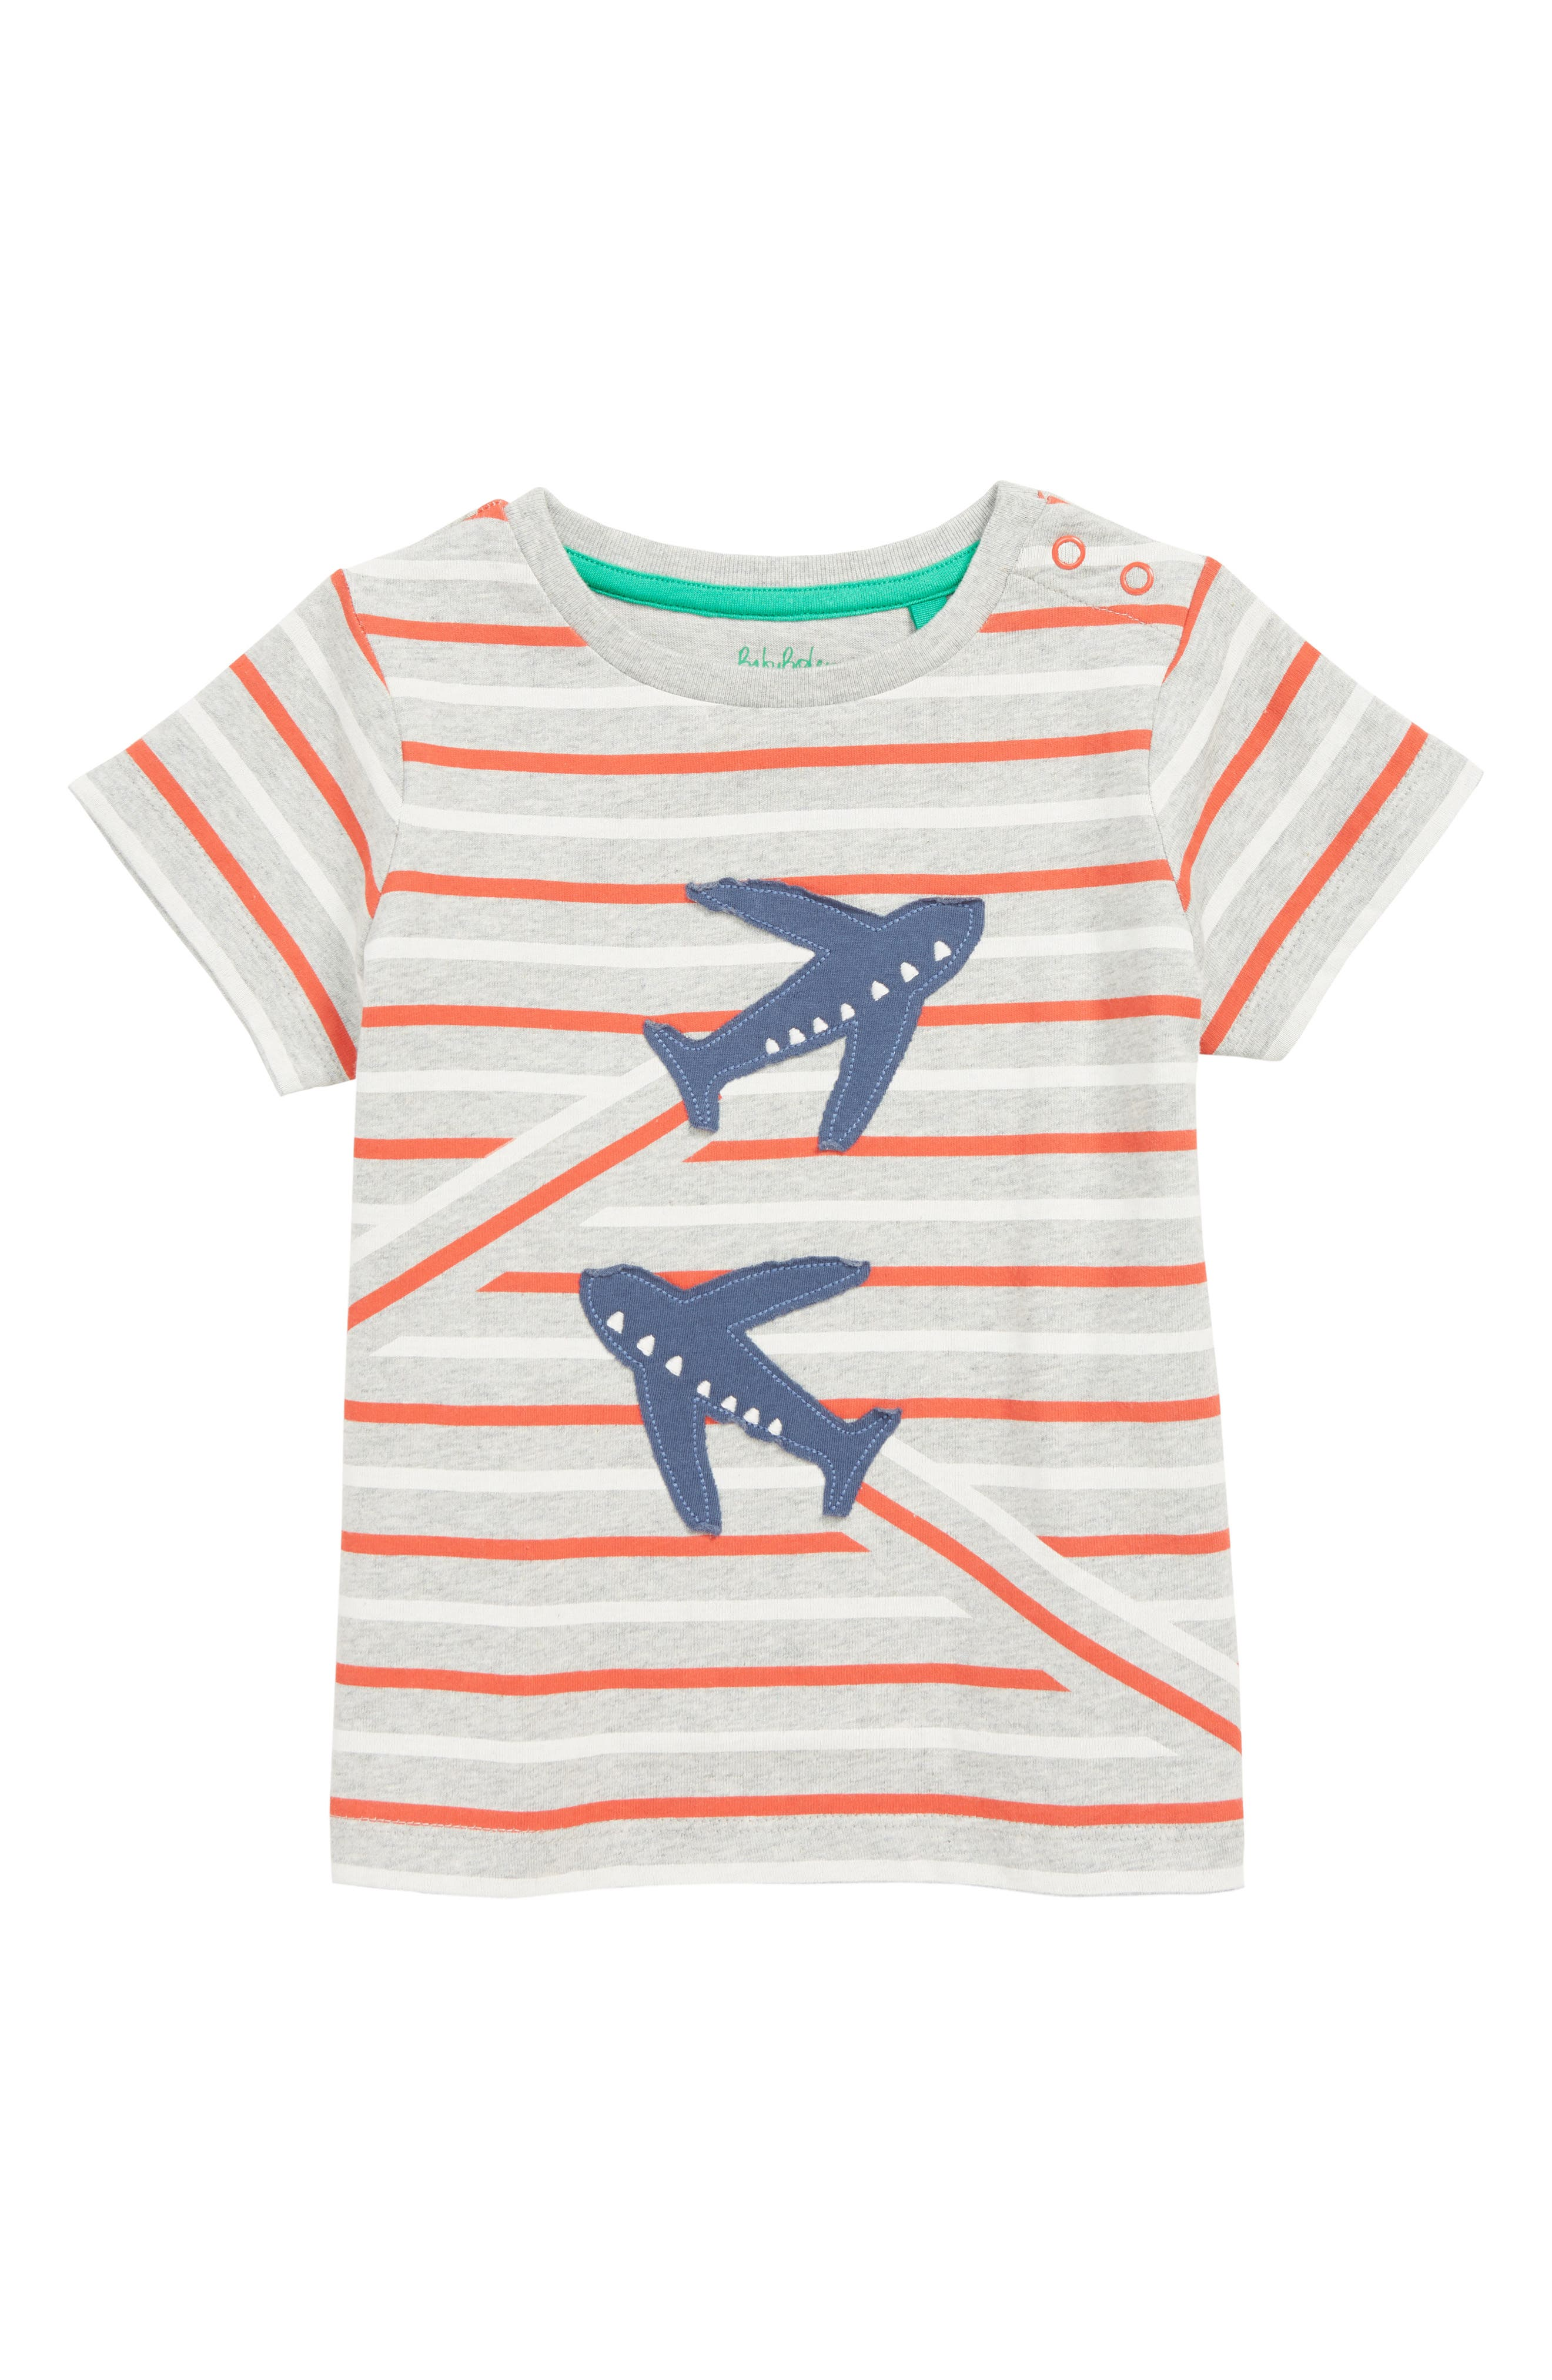 MINI BODEN,                             Transport T-Shirt,                             Main thumbnail 1, color,                             GRY GREY MARL/ BEAM RED PLANE